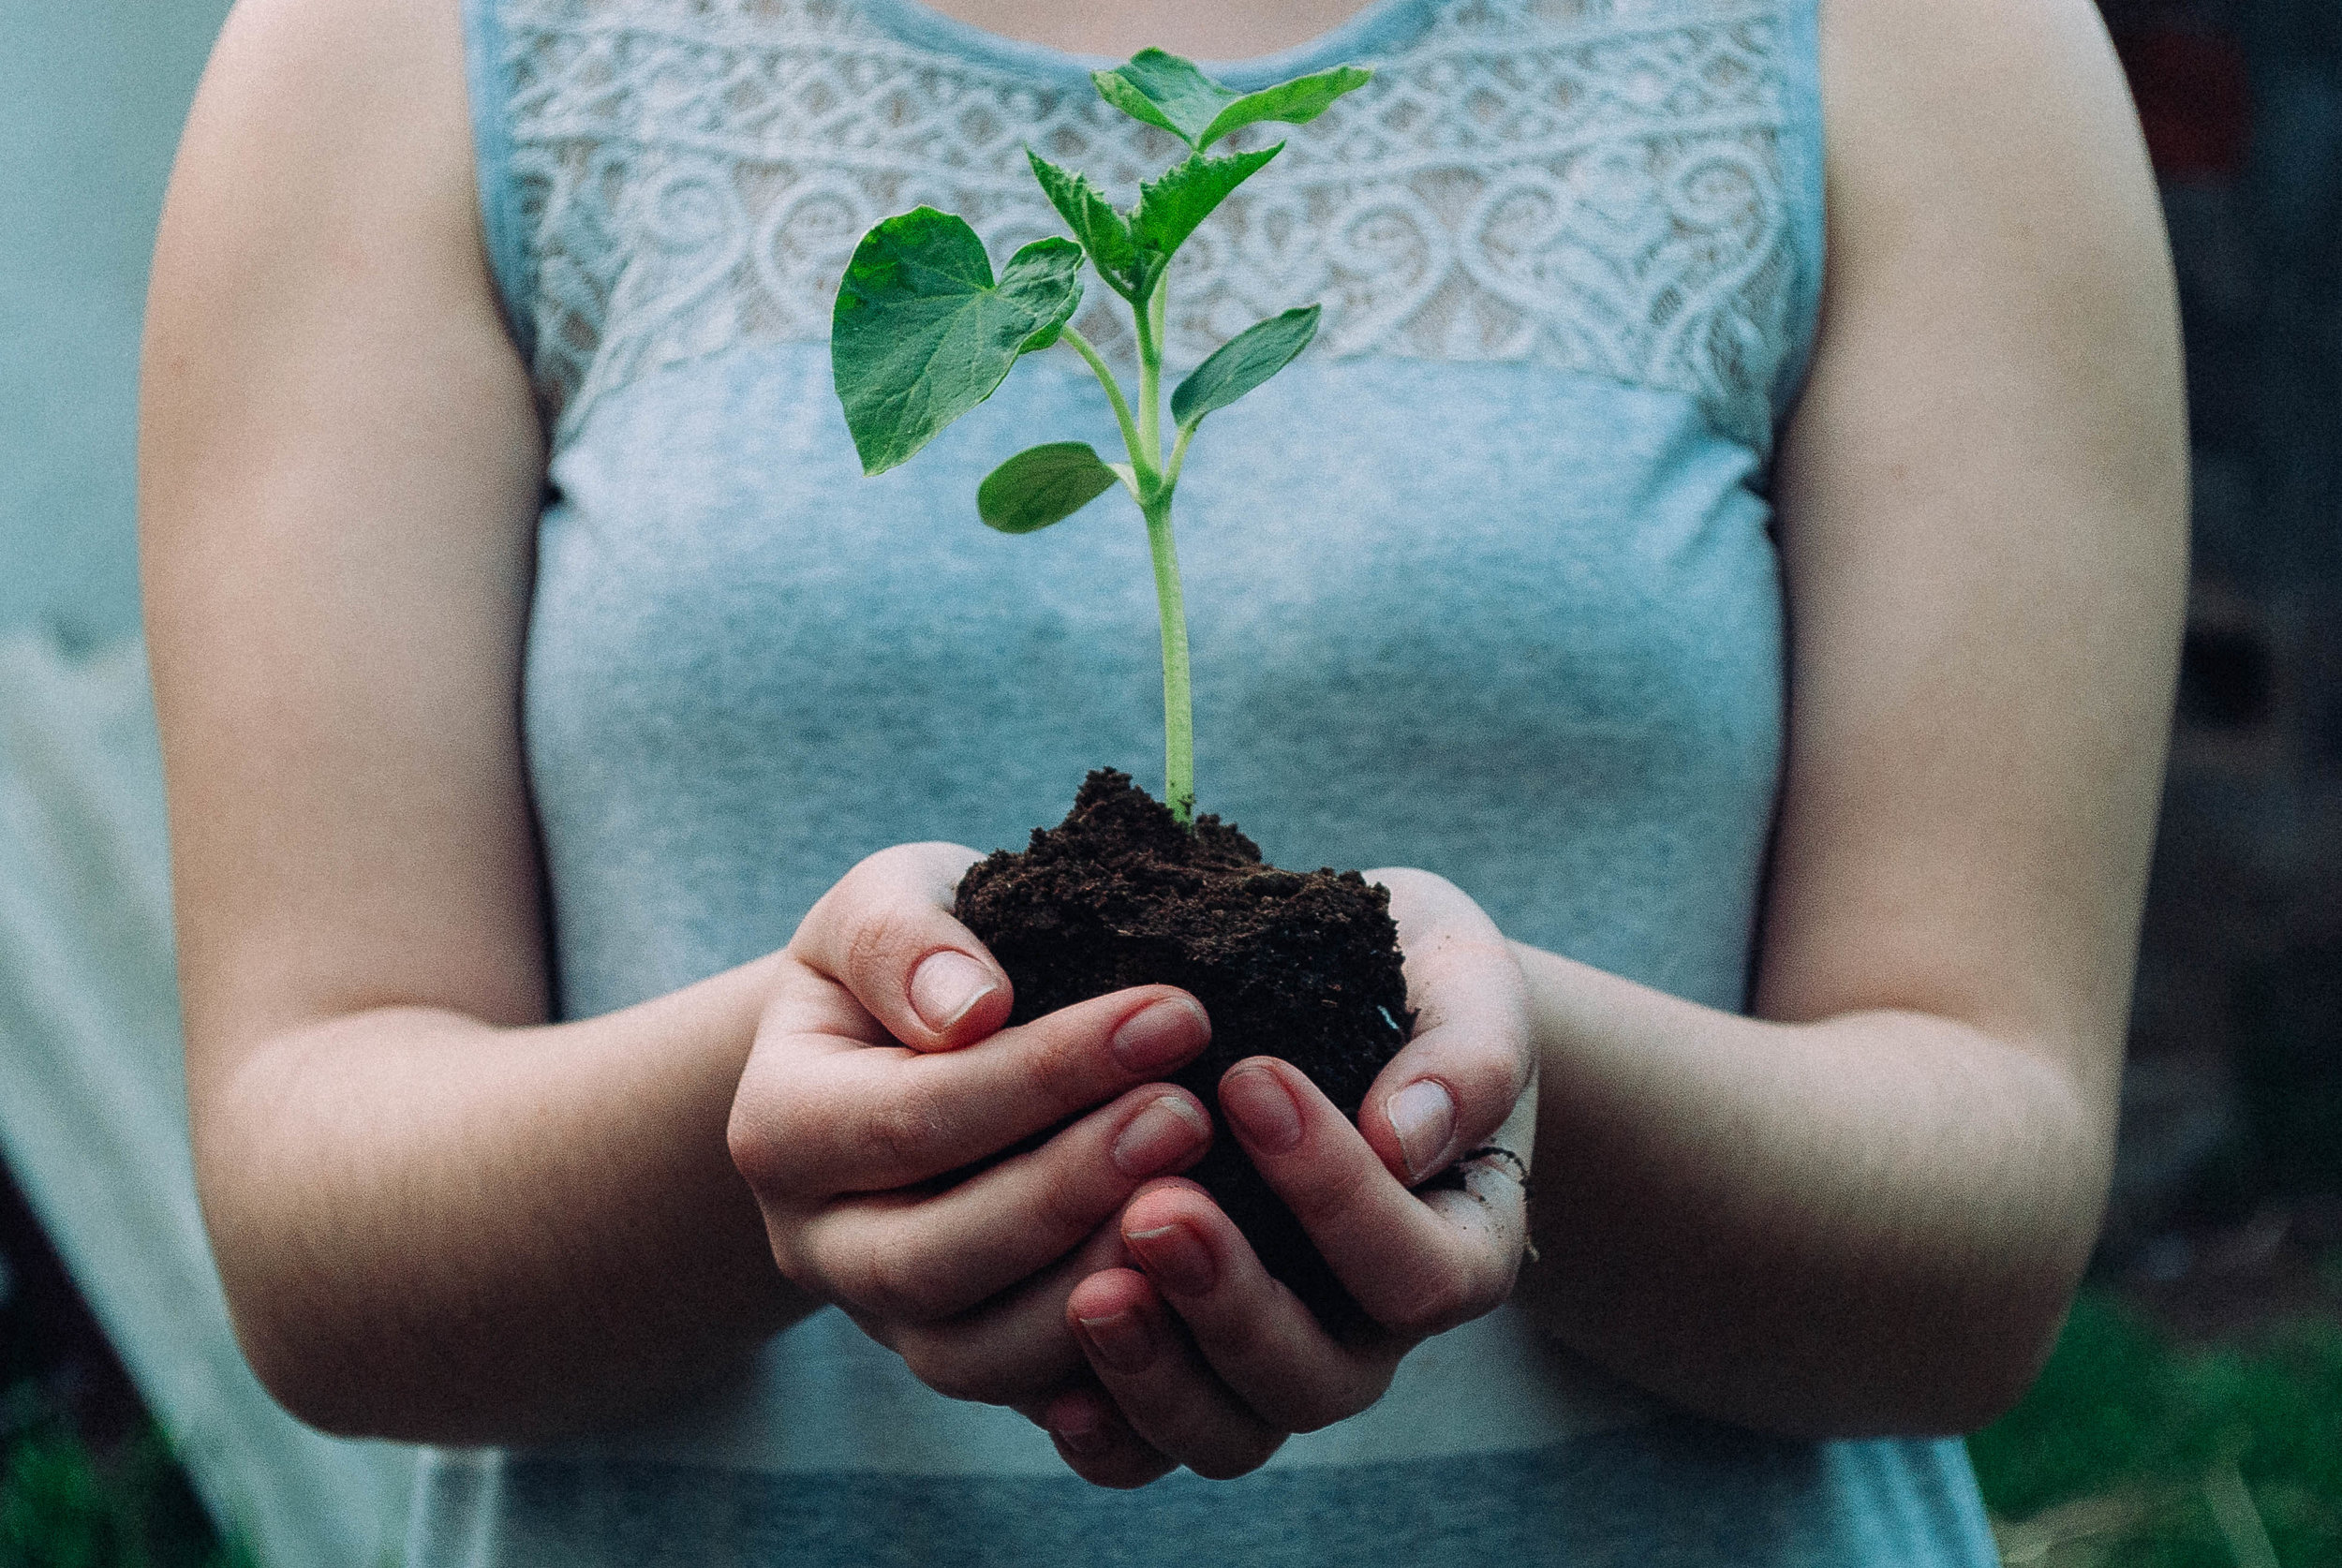 Plant trees from your computer while surfing the net by searching on Ecosia. Green fingers without the dirt for the win!